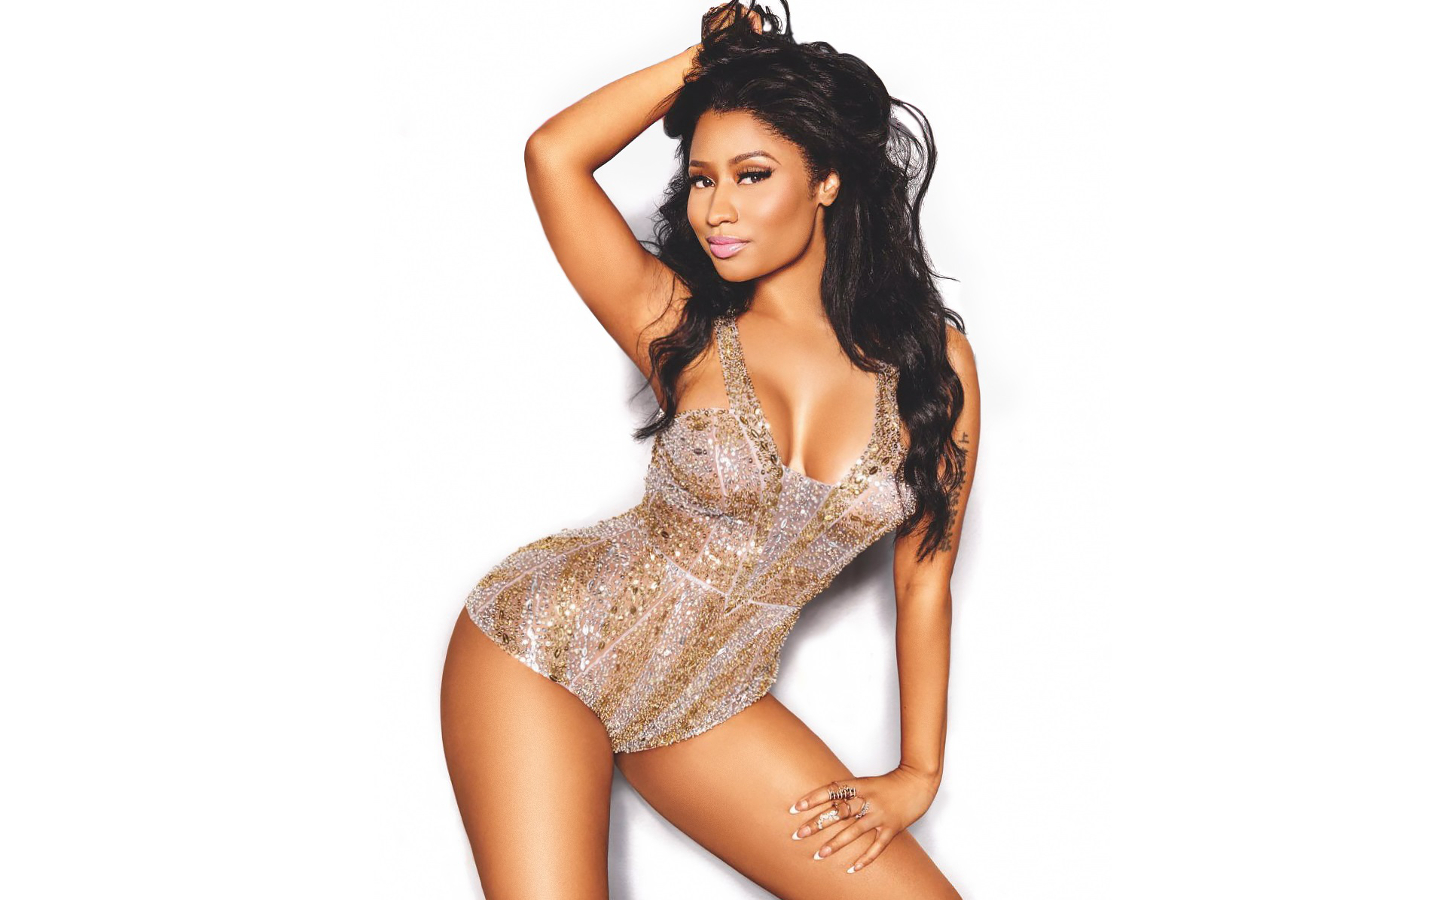 nicki minaj - photo #14